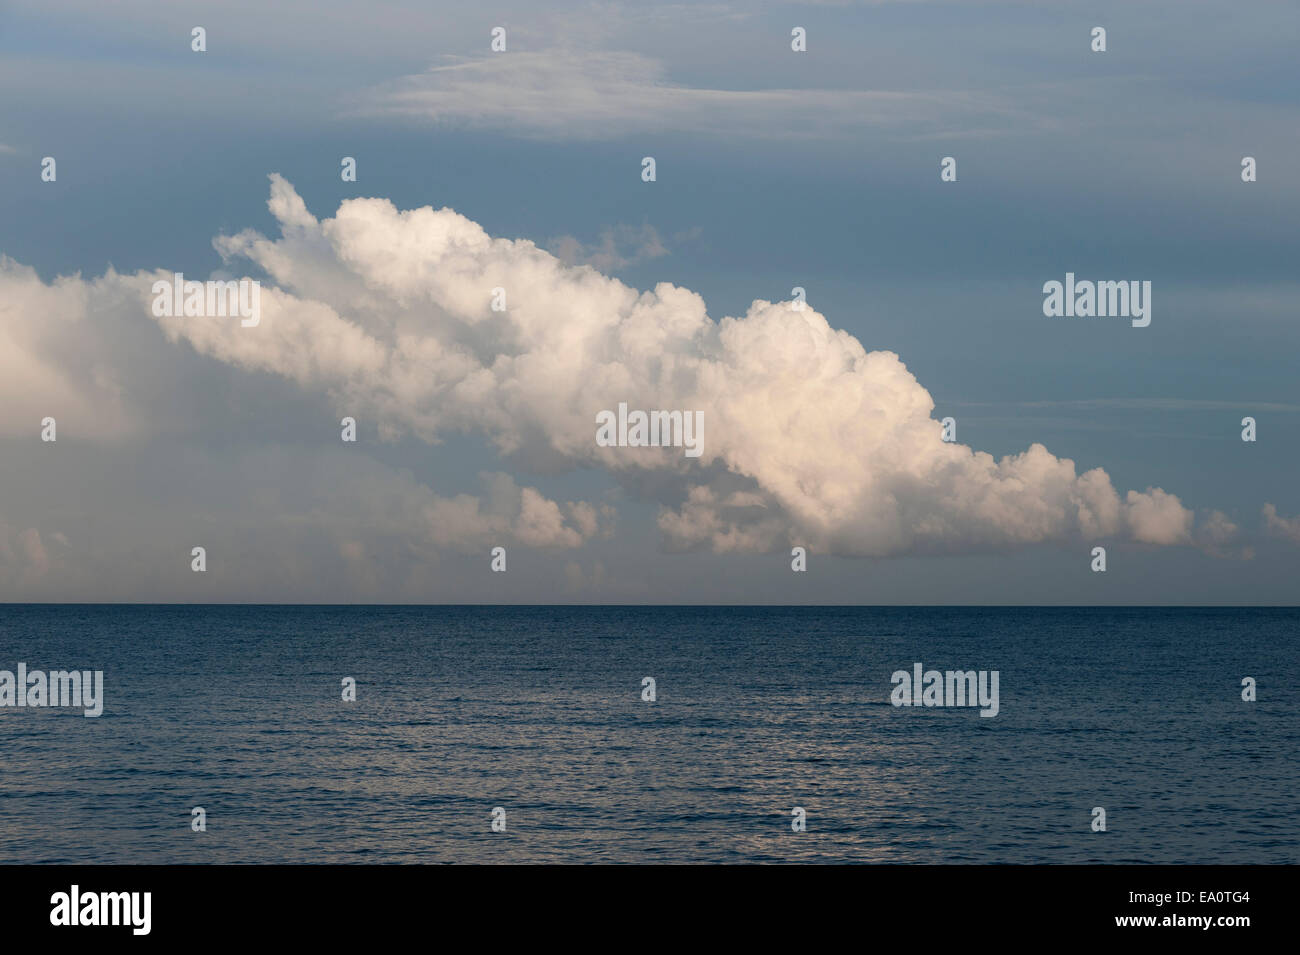 Clouds over the sea in Mevagissey, Cornwall. - Stock Image